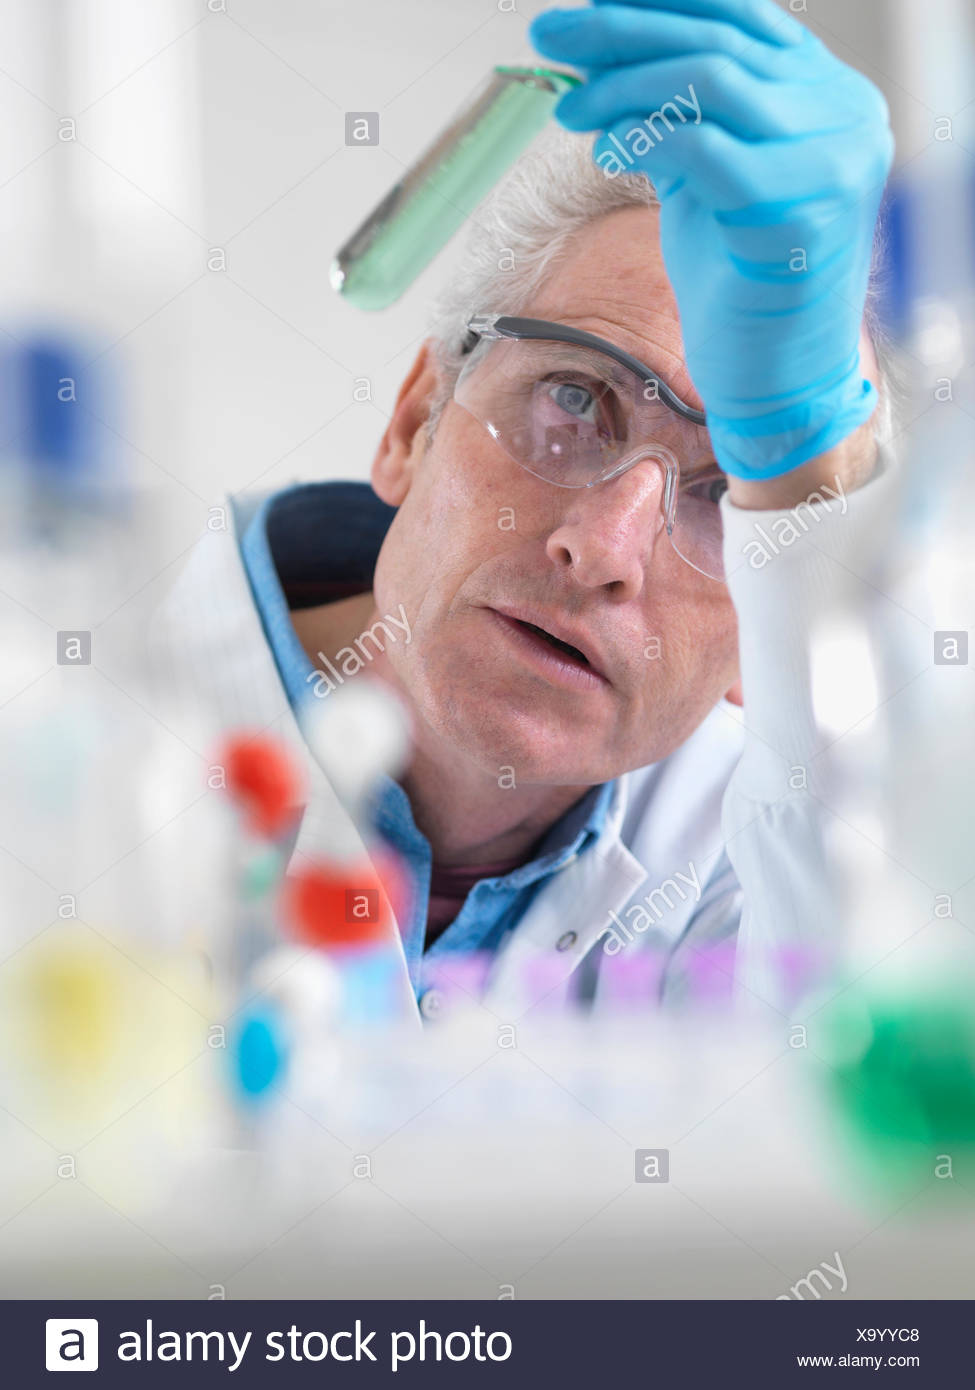 Scientist viewing chemical experiment in laboratory - Stock Image